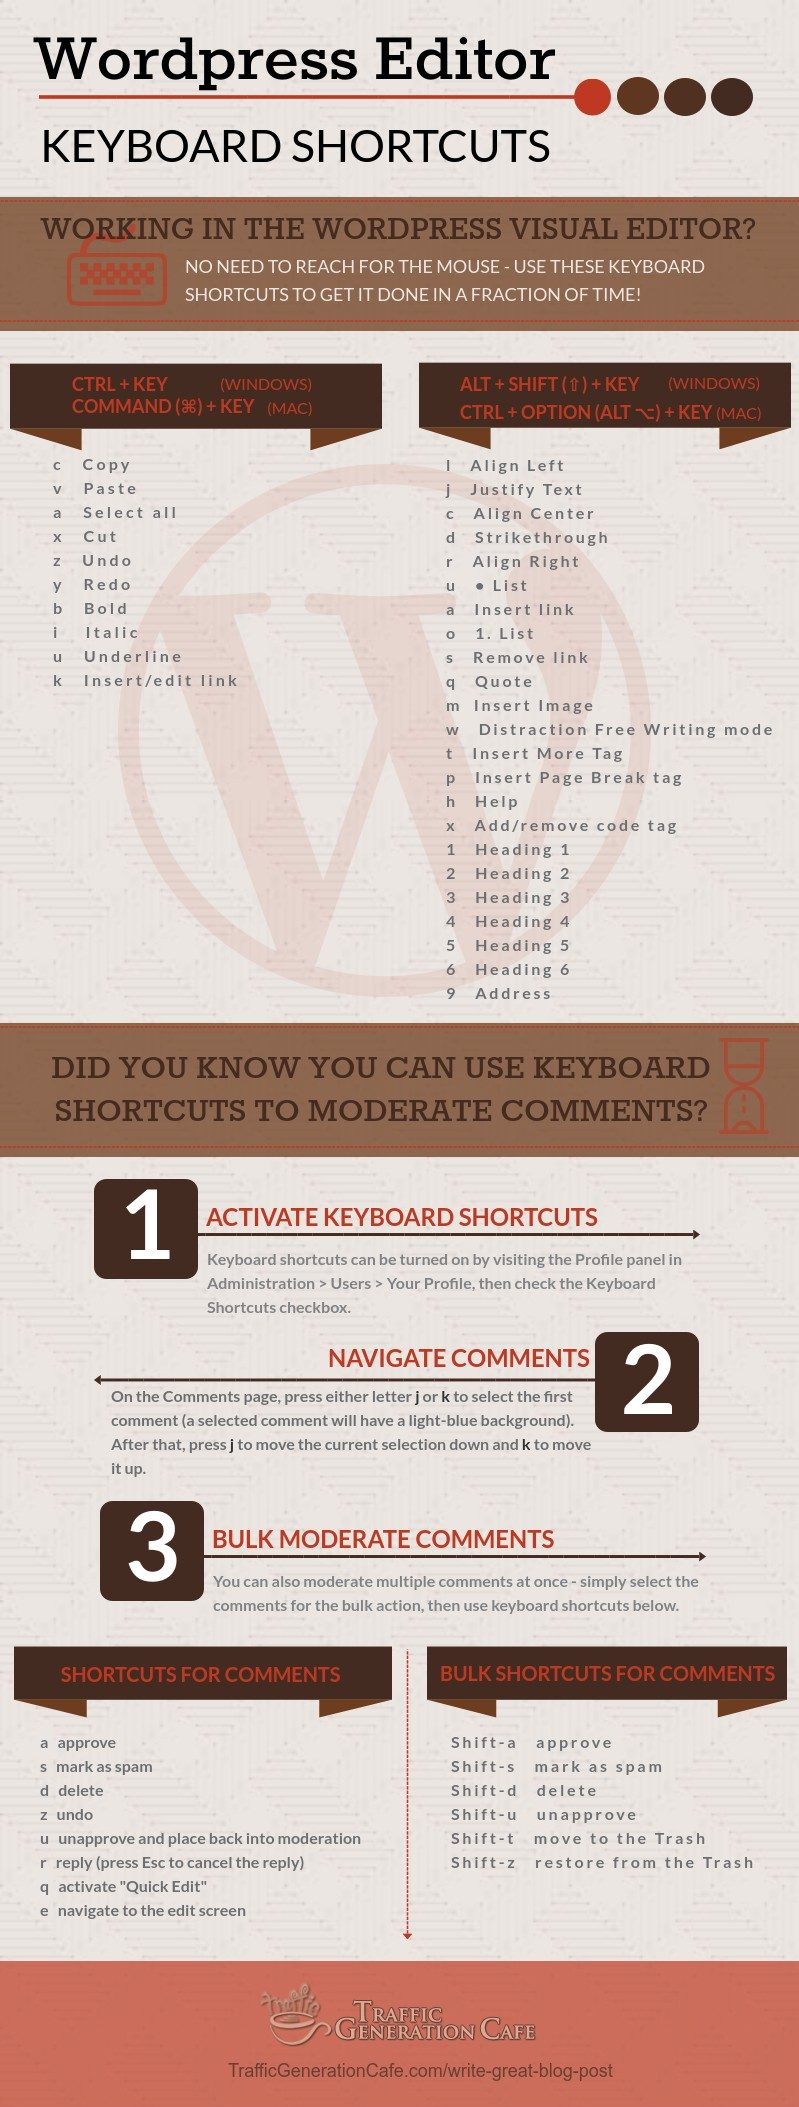 How to write better blog posts faster with keyboard shortcuts